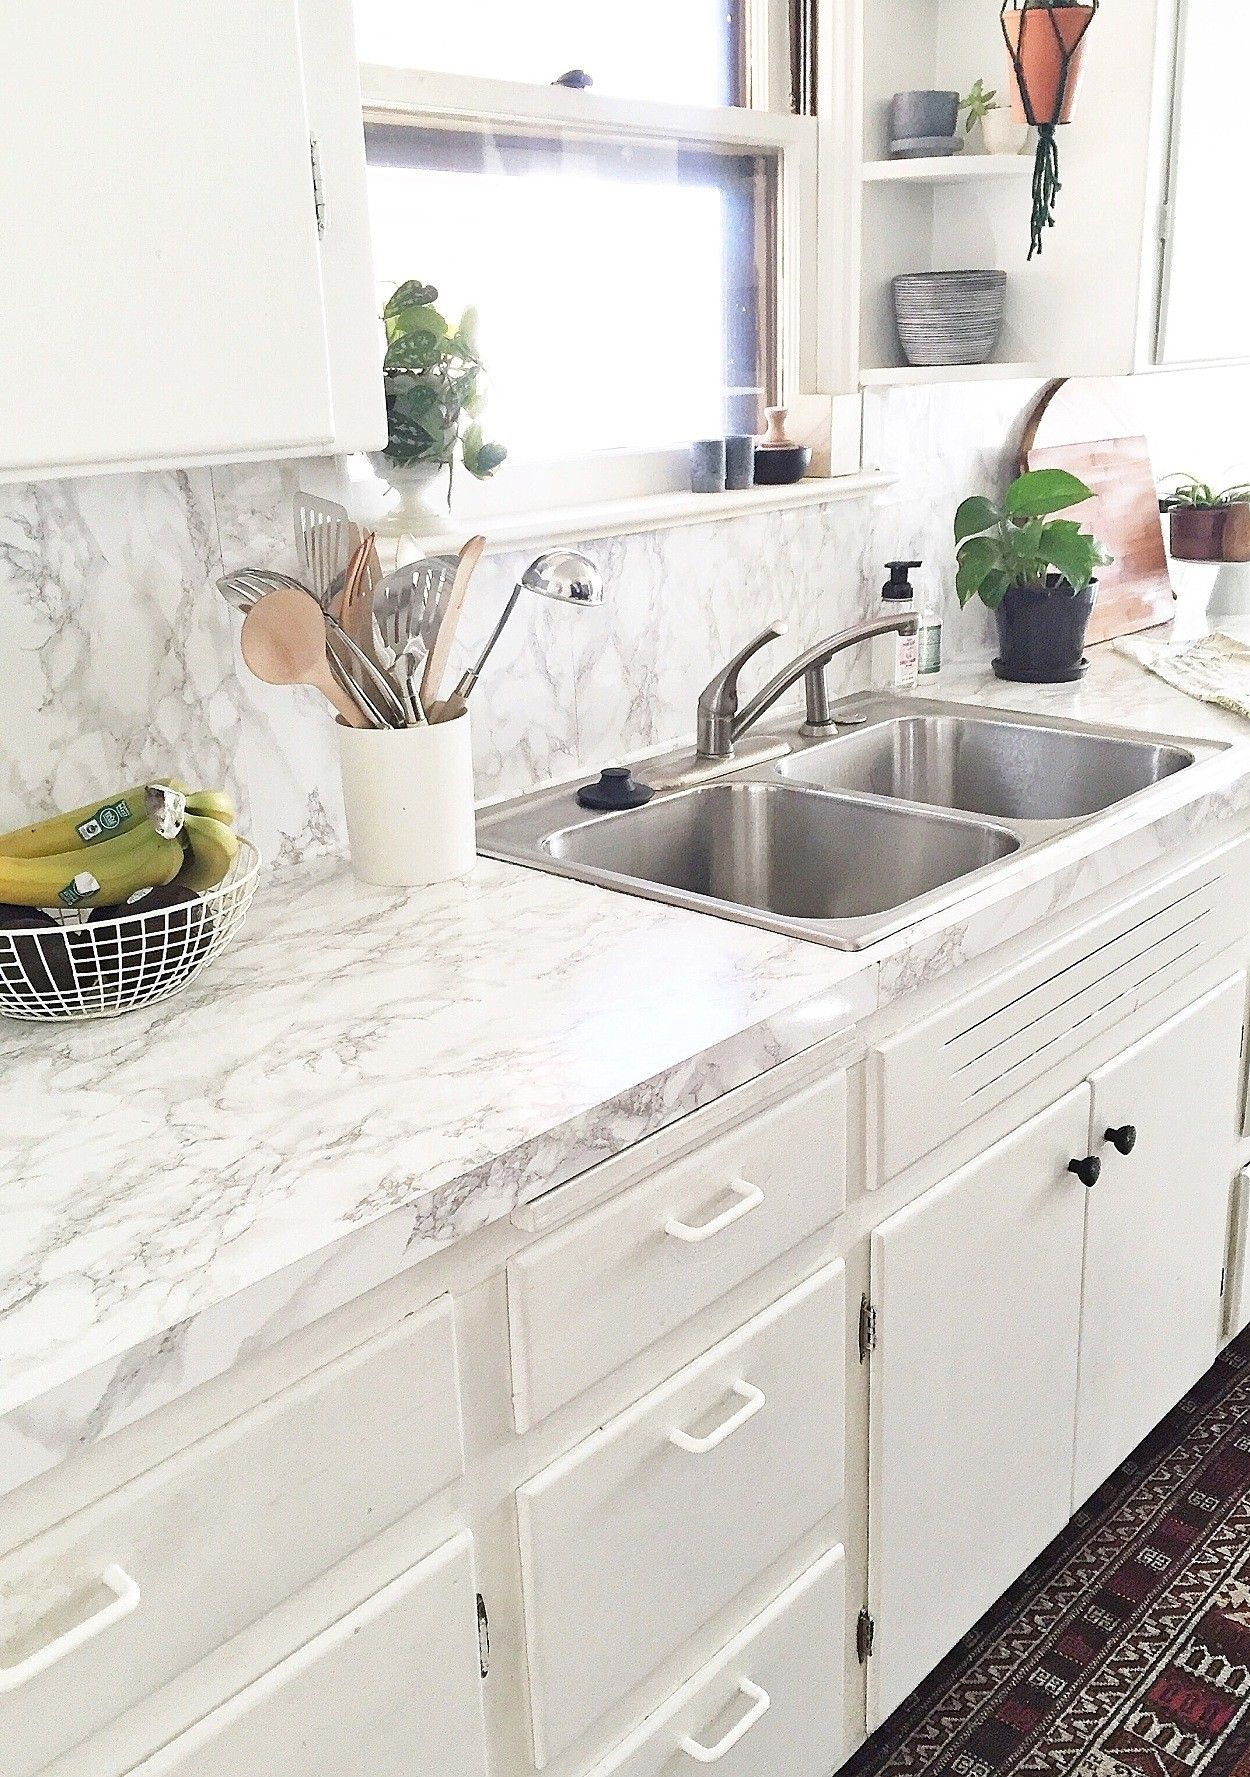 6 Amazing Decor Ideas For Your Rental Apartment Rental Kitchen